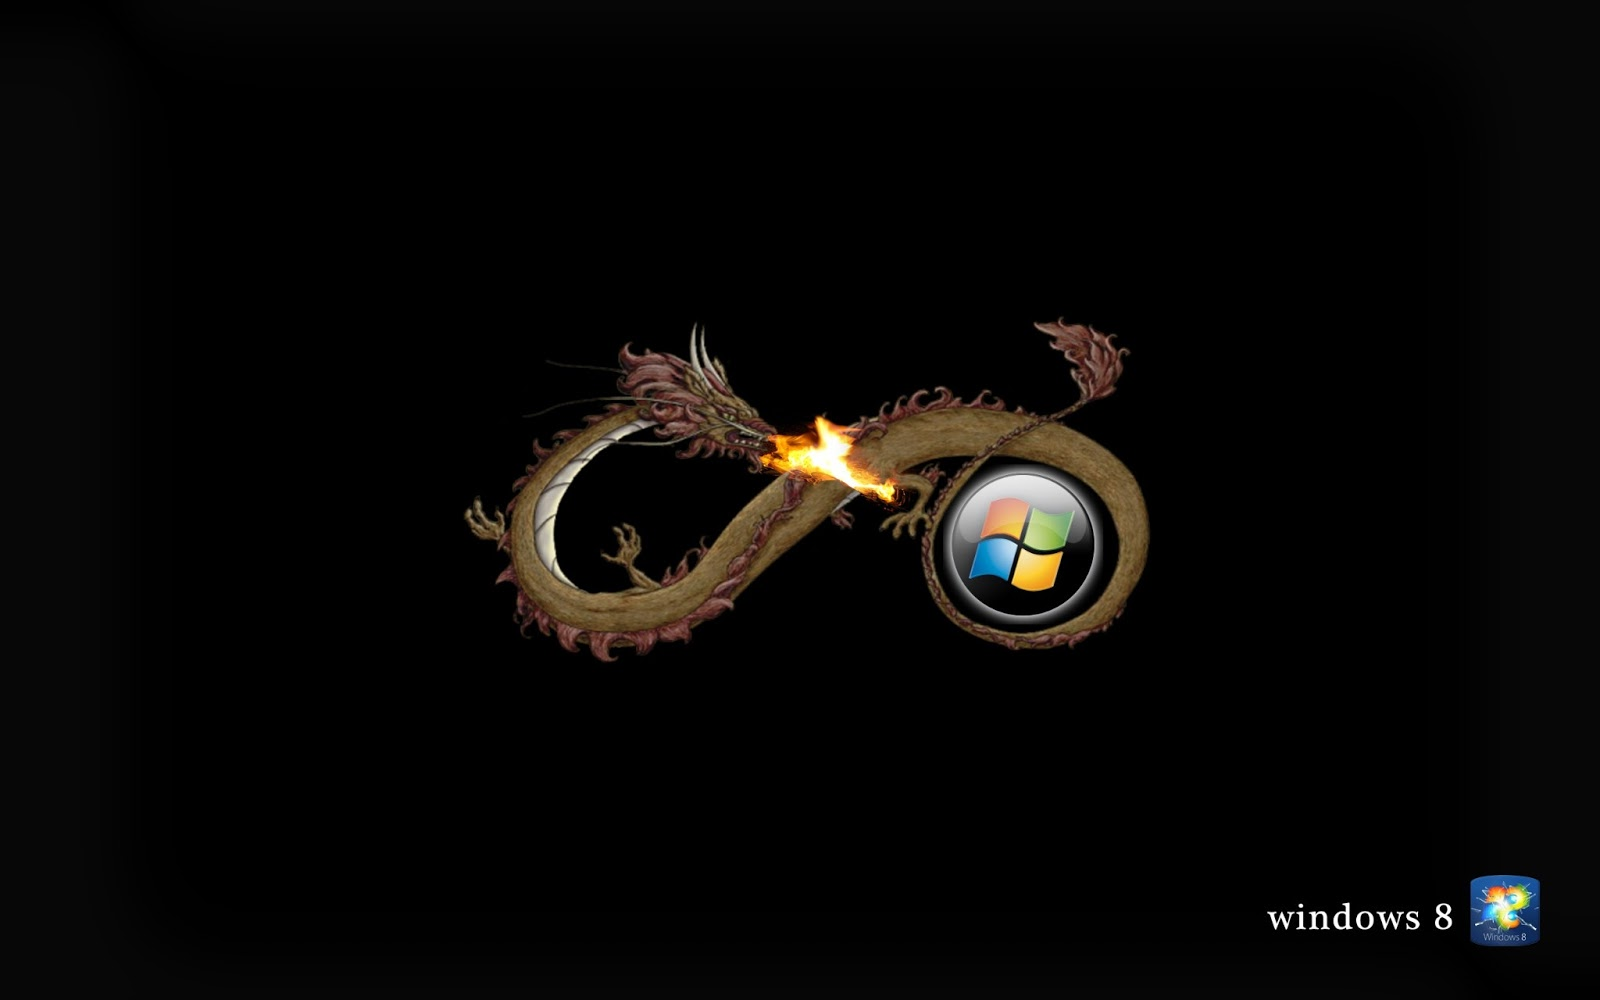 http://4.bp.blogspot.com/-QRuSguiUlOY/URdwpLR1jjI/AAAAAAAAER8/SHXnjgQ_k3M/s1600/Windows-8-dragon-hd-wallpaper.jpg